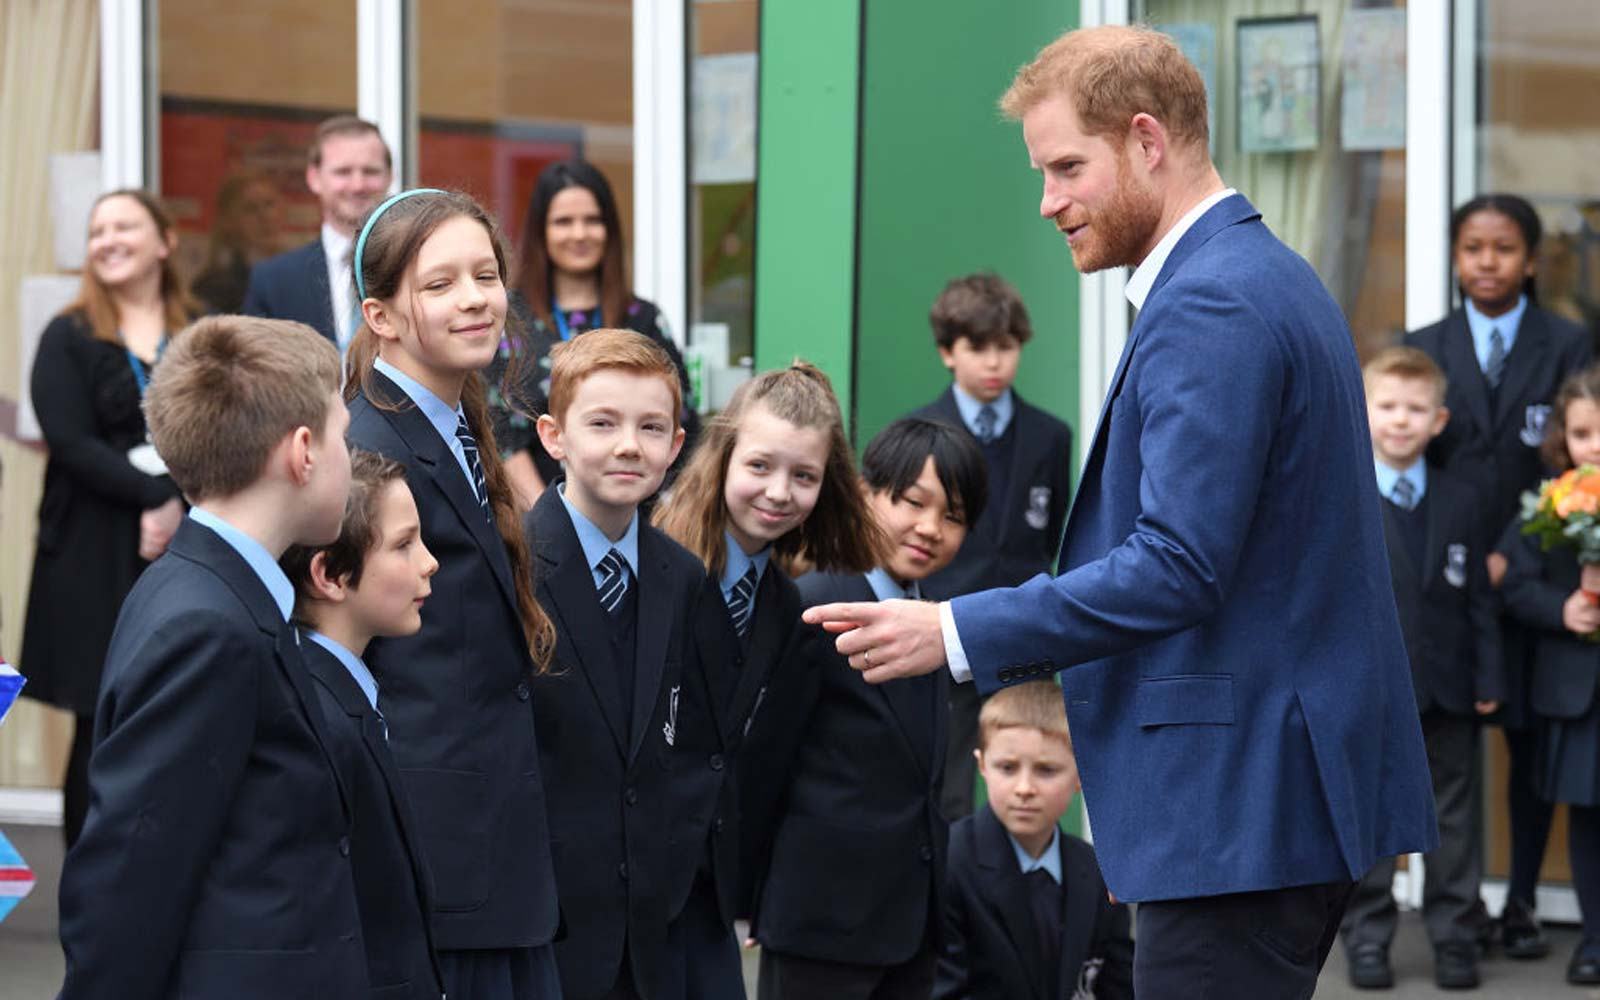 'When Is the Real Prince Coming?' — Harry Has Best Reaction When Boy Doesn't Believe He's a Royal